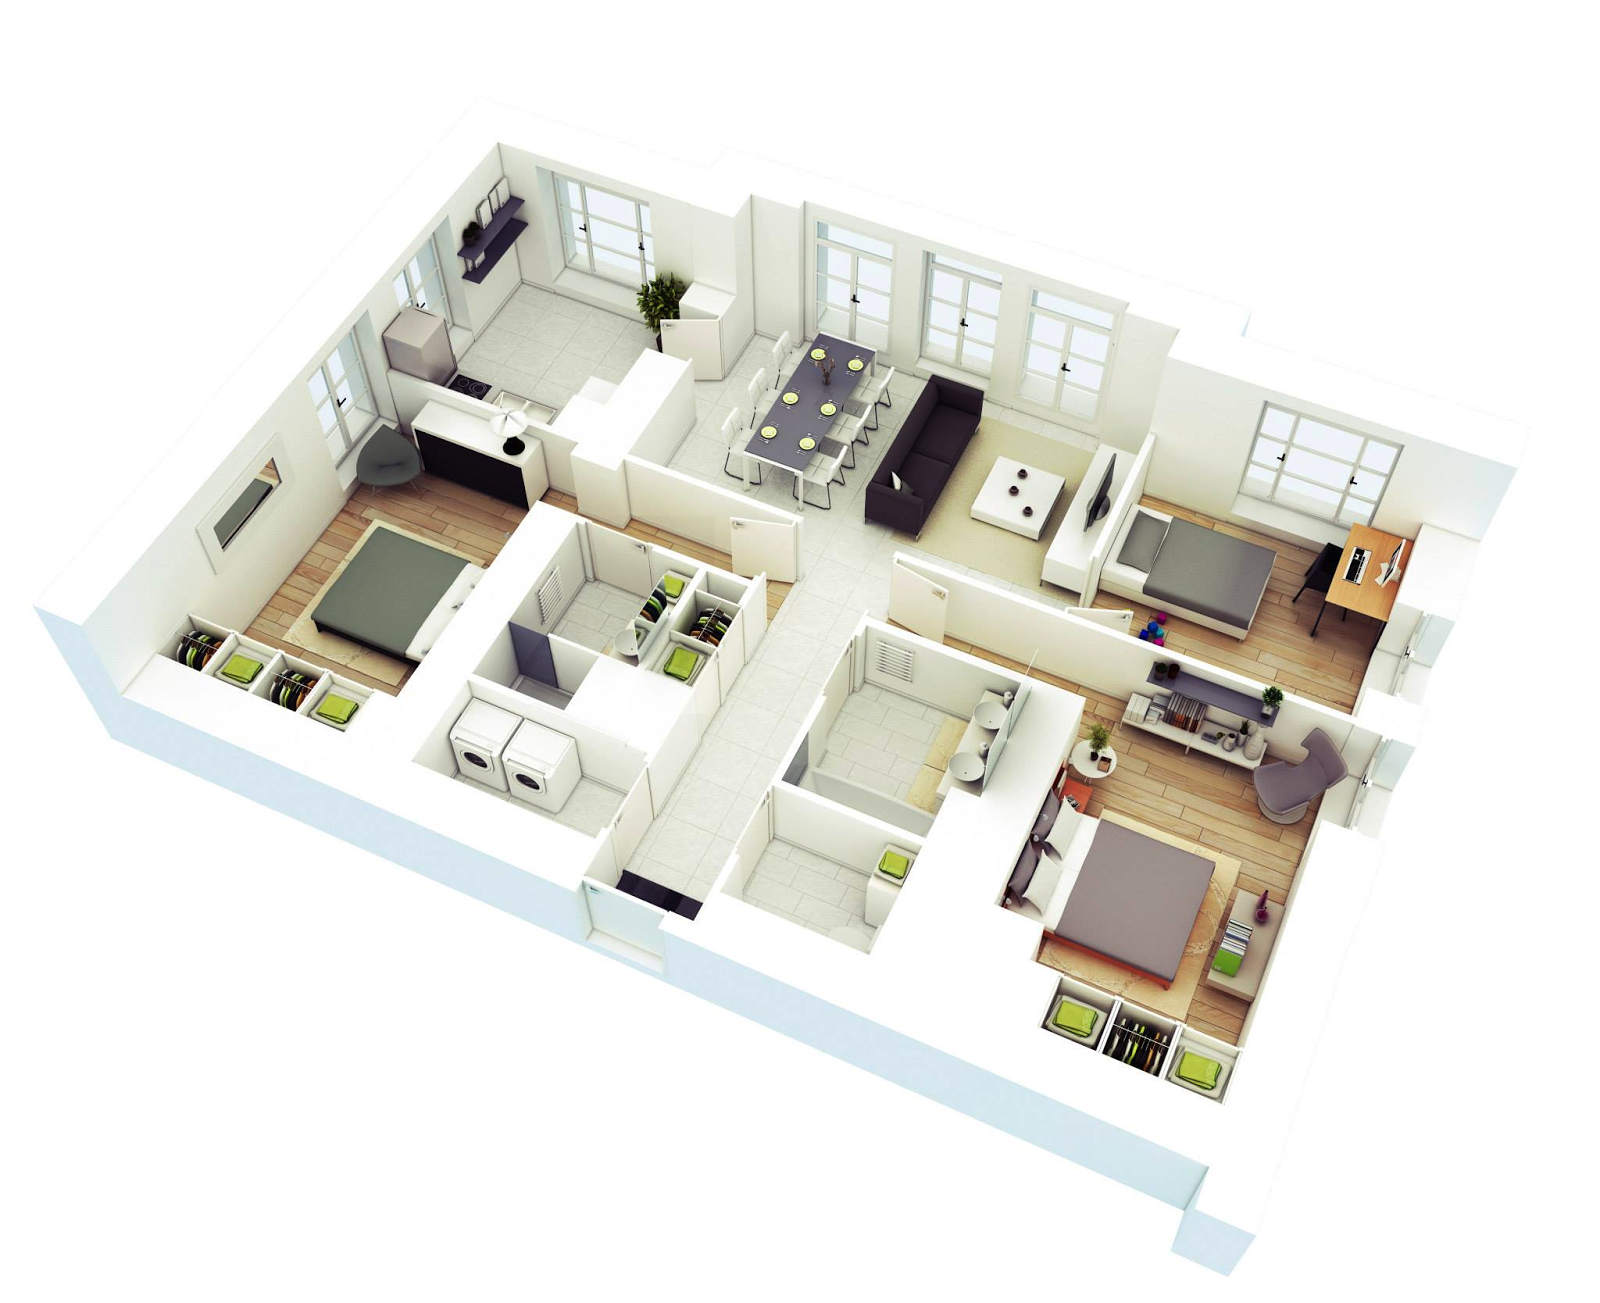 4 three bedroom home - 43+ Floor Plan Small House Design 3 Bedrooms Gif